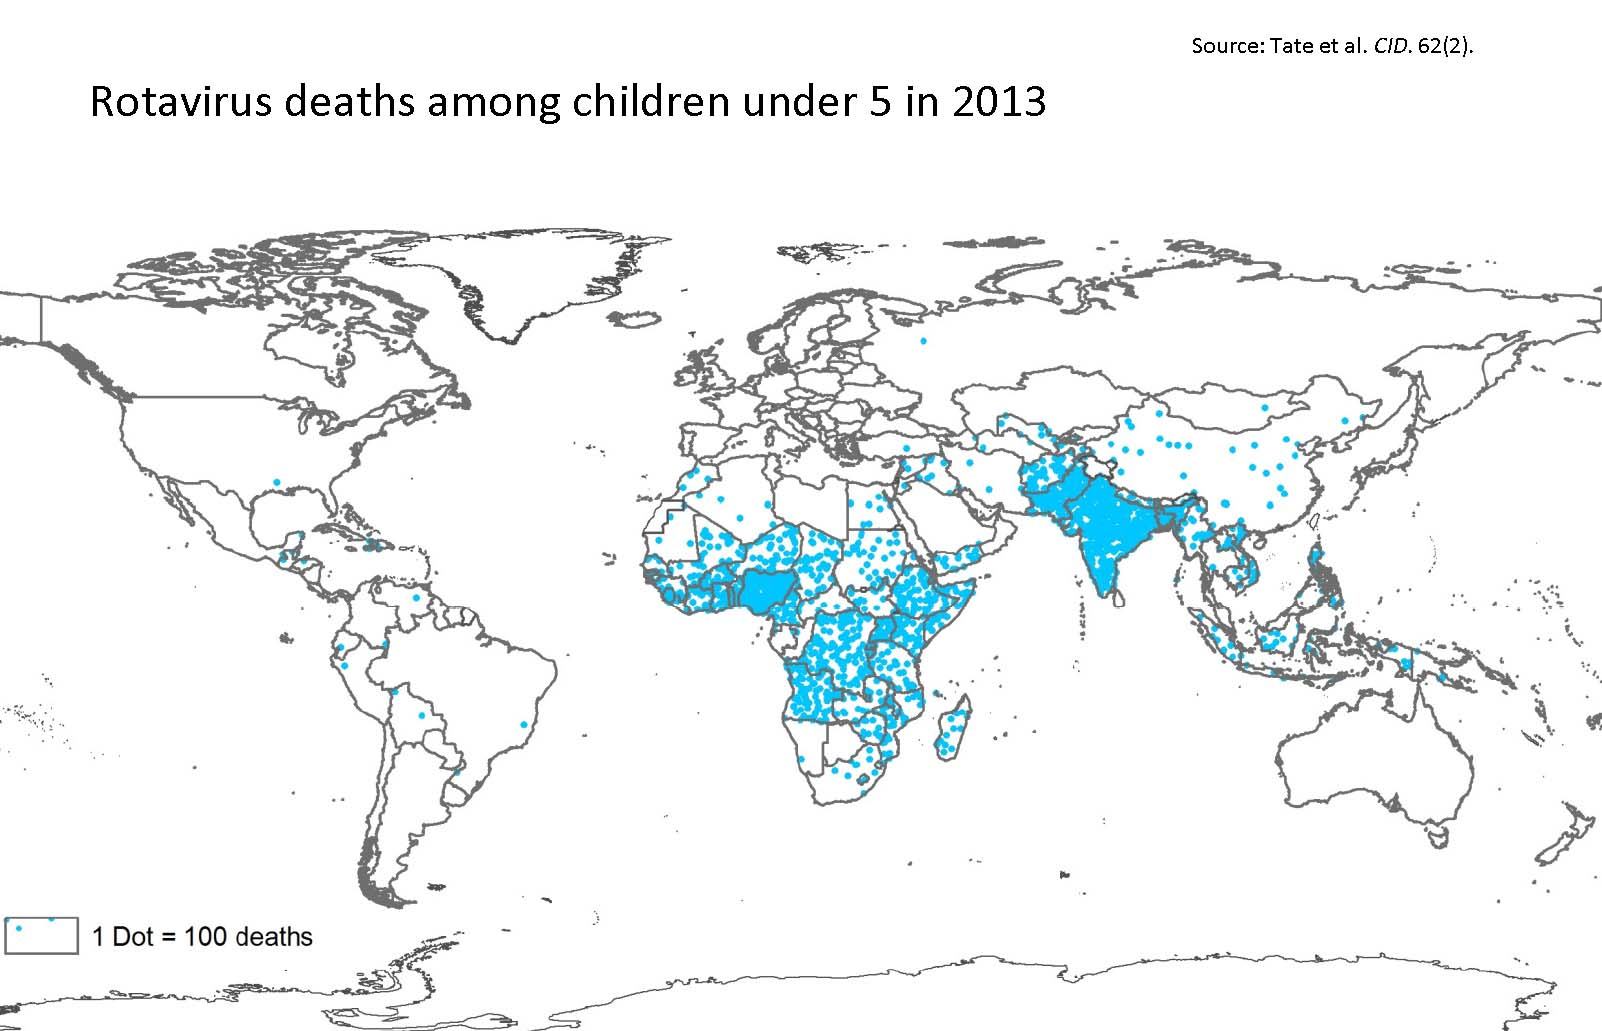 World map of global rotavirus deaths in 2013